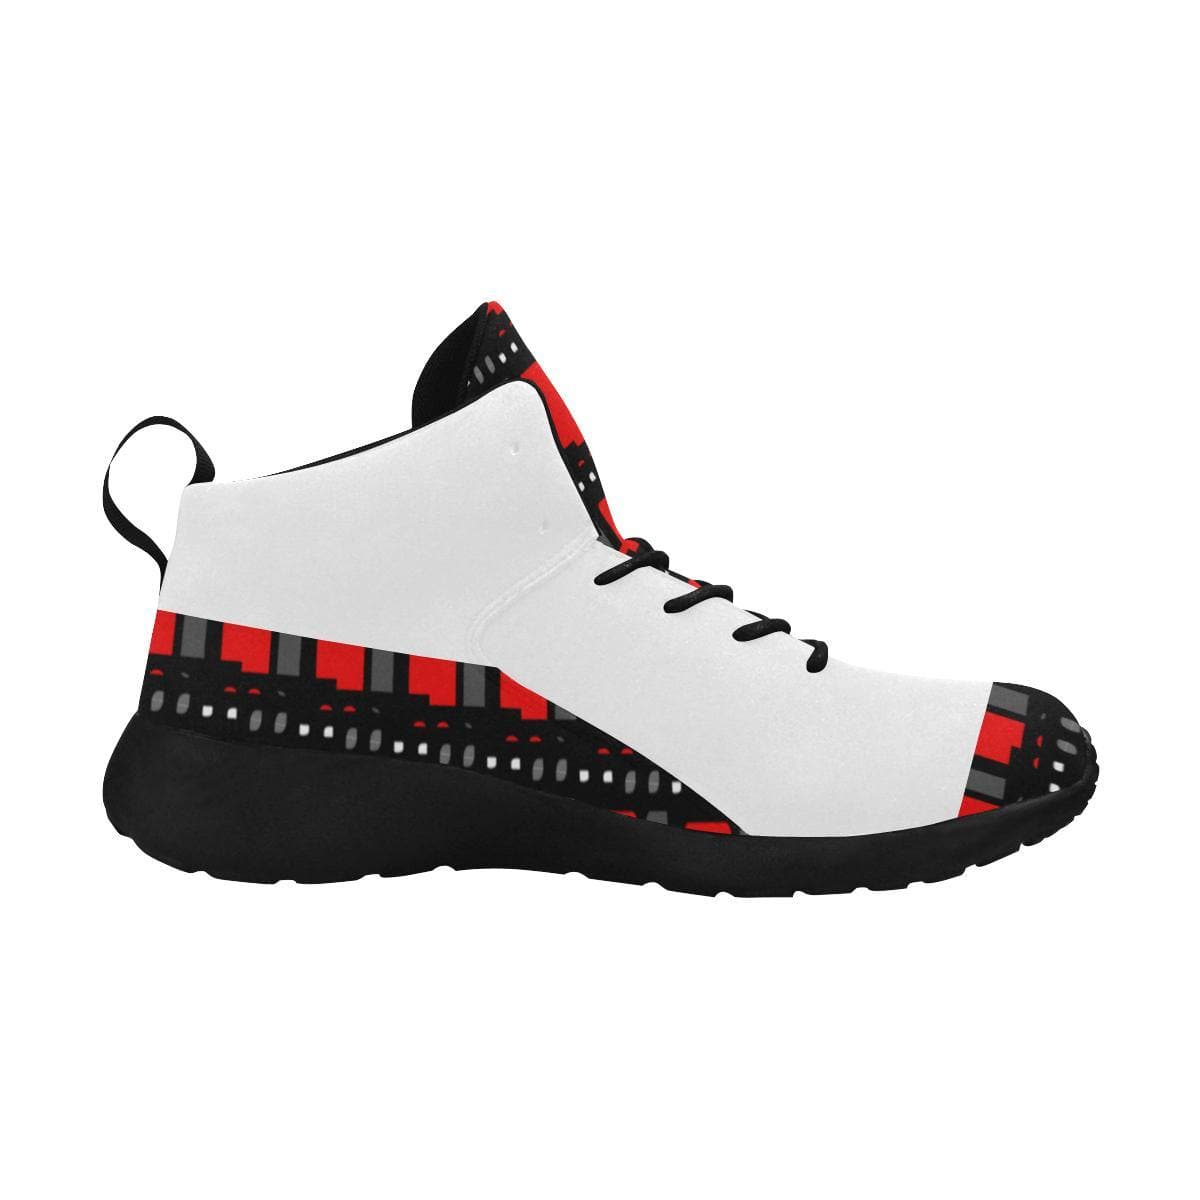 Edgy Men's Basketball Shoes - Tie-Fly